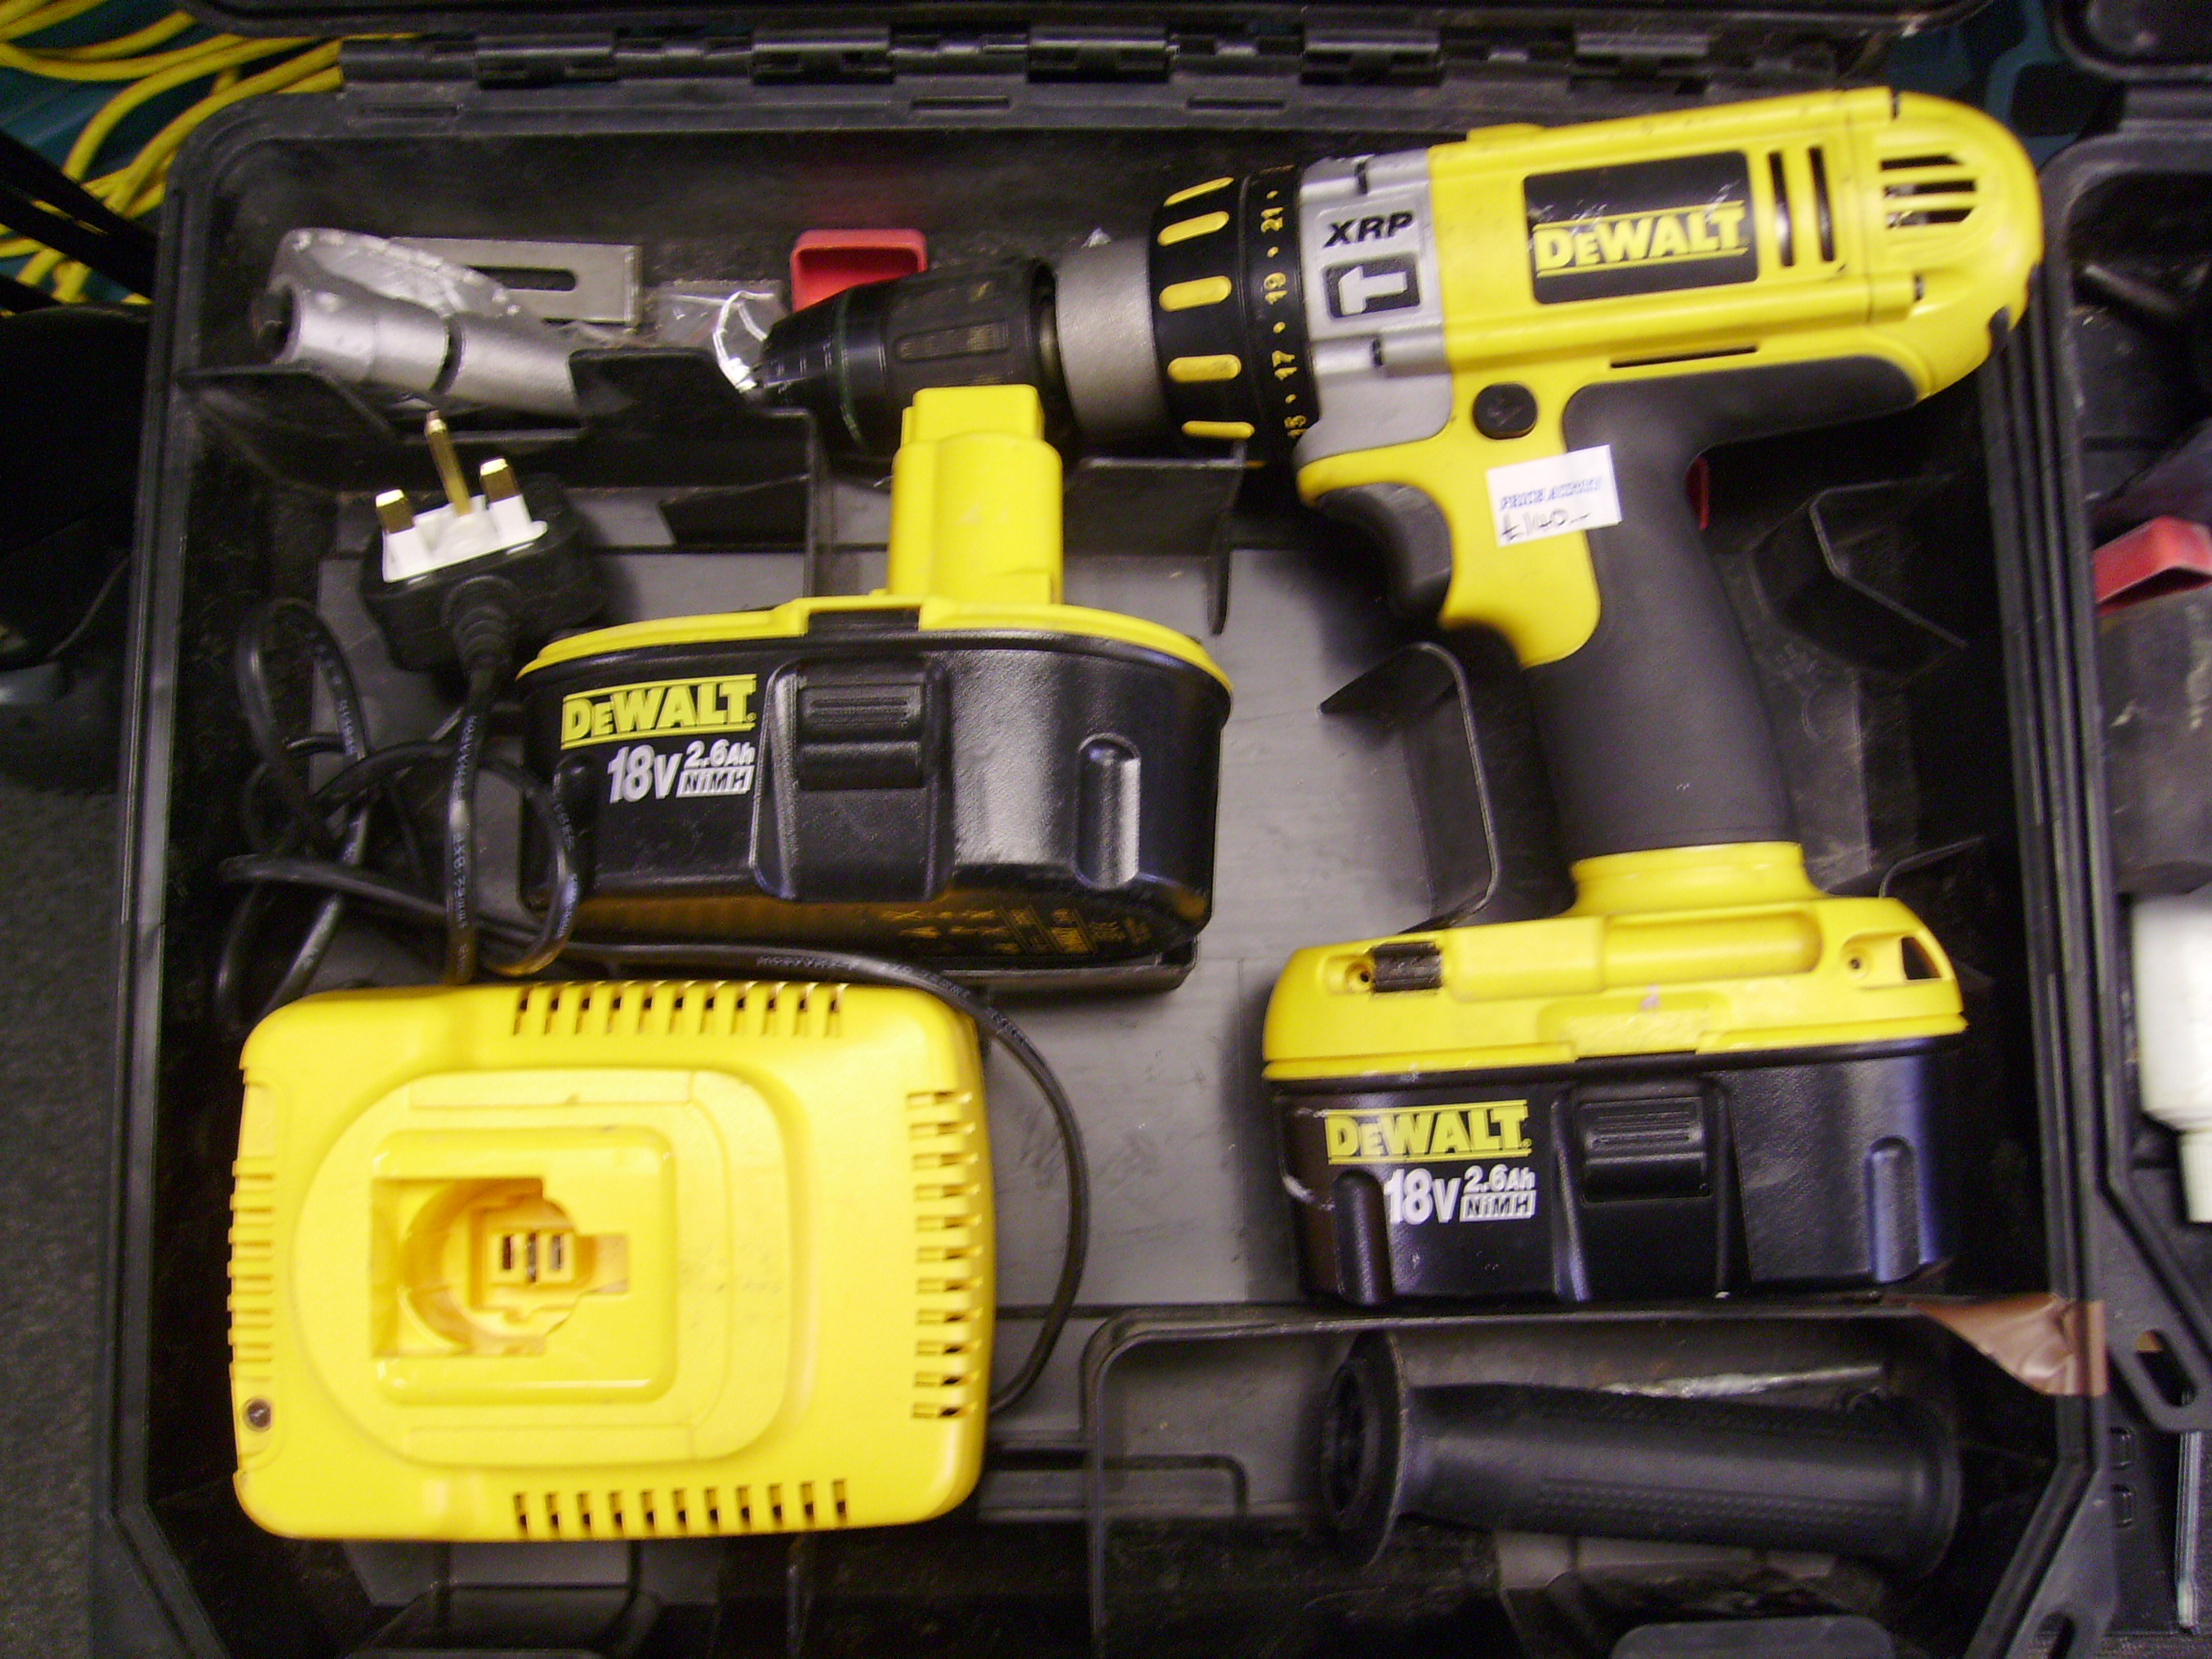 Professional Power Tools - De Walt, Makita, Bosch, Hitachi and more, all with massive discounts